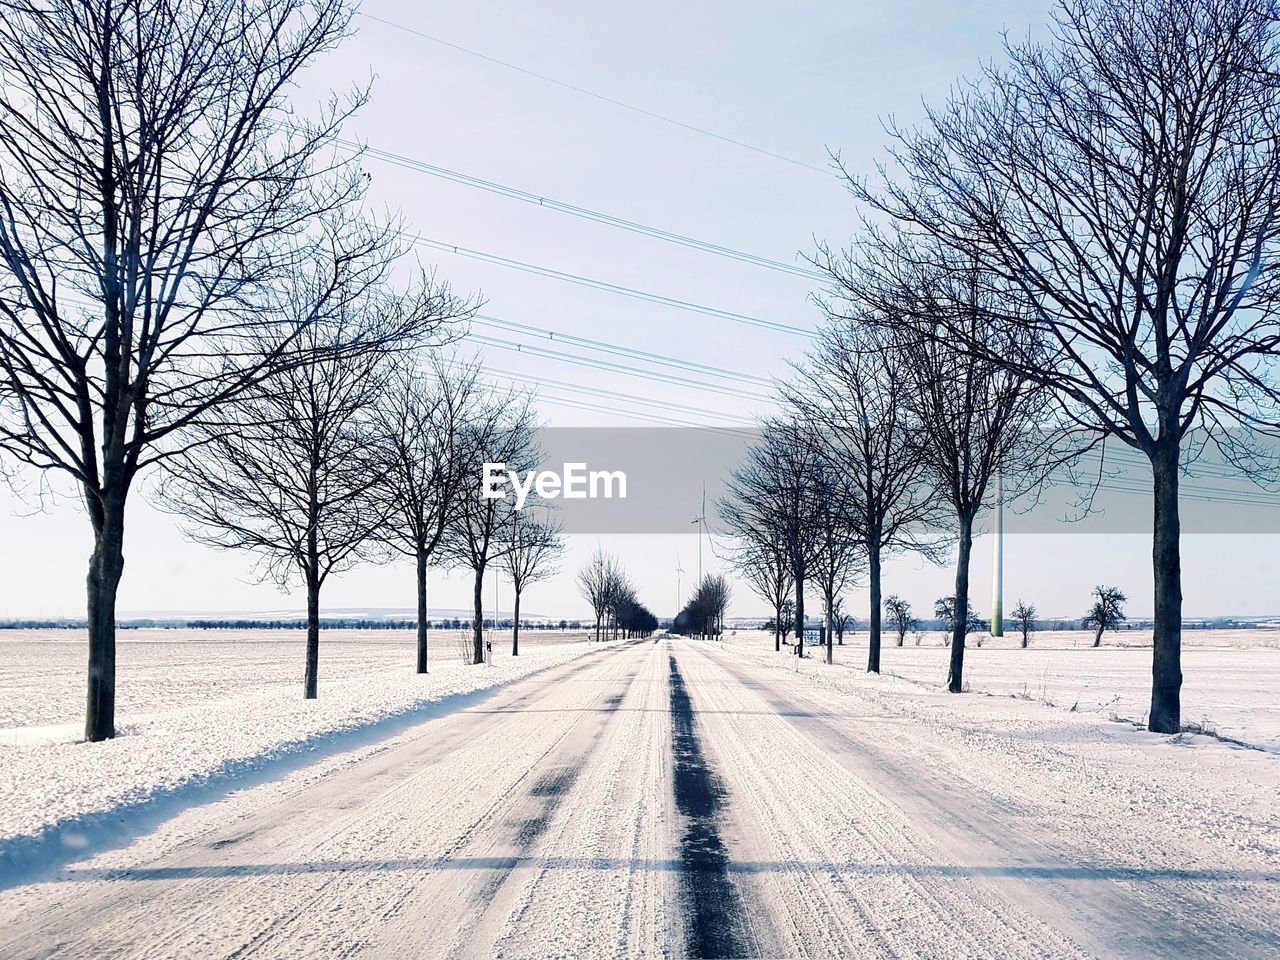 tree, bare tree, the way forward, direction, diminishing perspective, plant, transportation, snow, nature, cold temperature, winter, sky, road, day, vanishing point, no people, cable, electricity, power line, outdoors, treelined